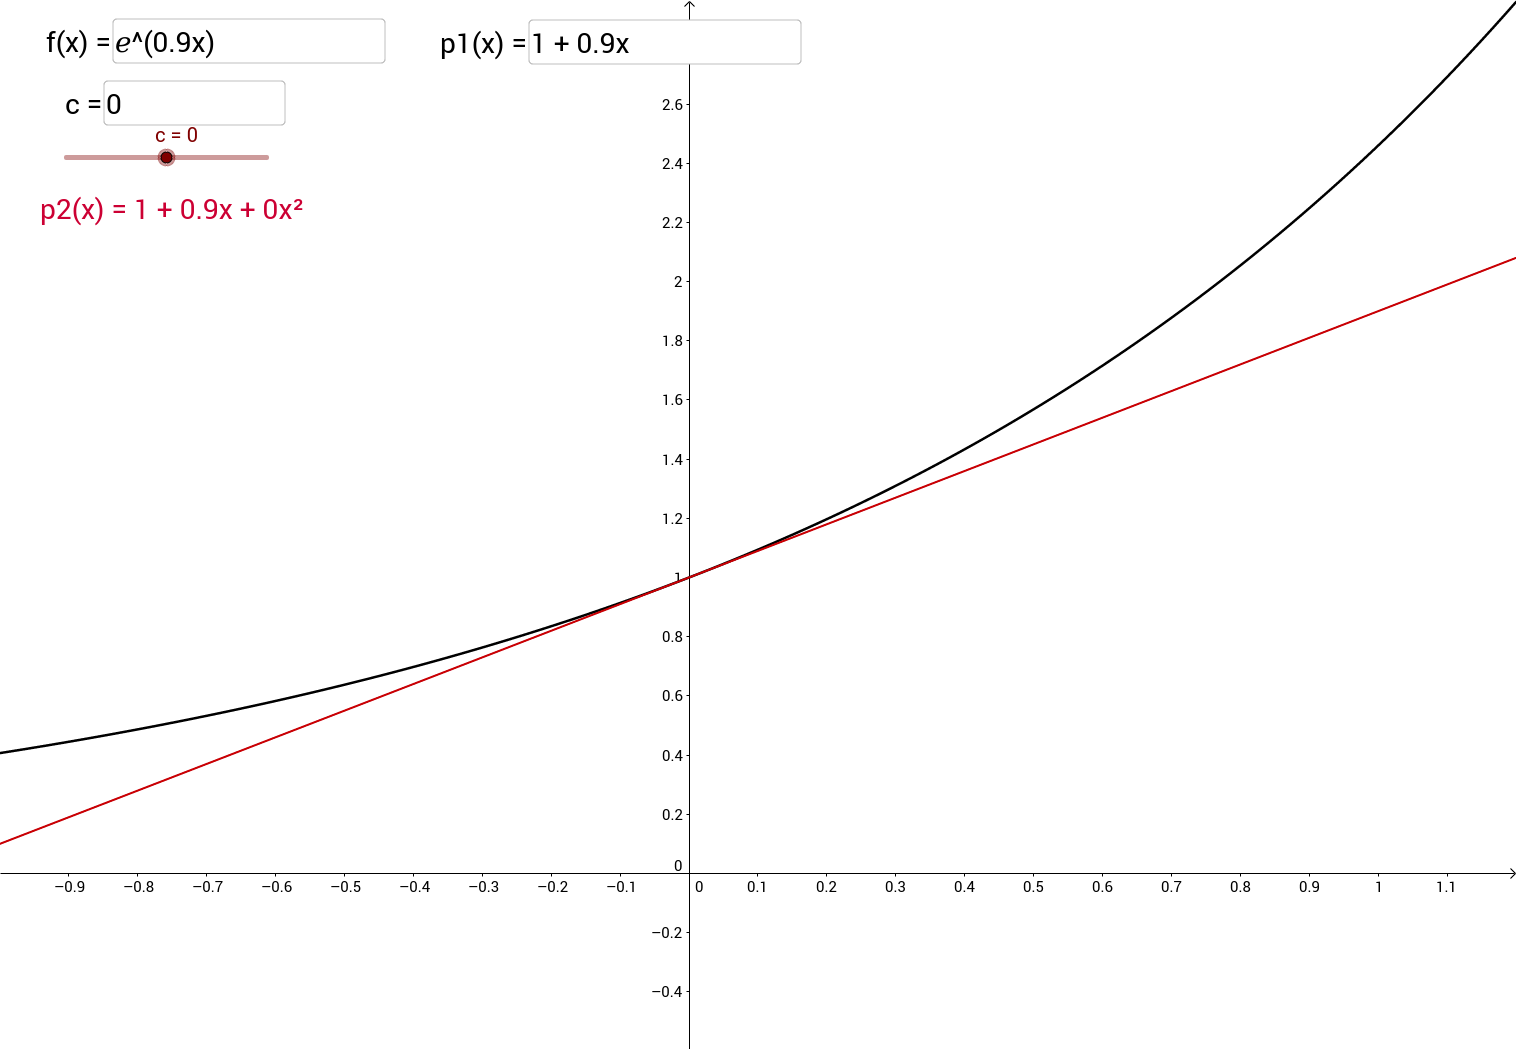 Finding a Quadratic Approximation for a Function